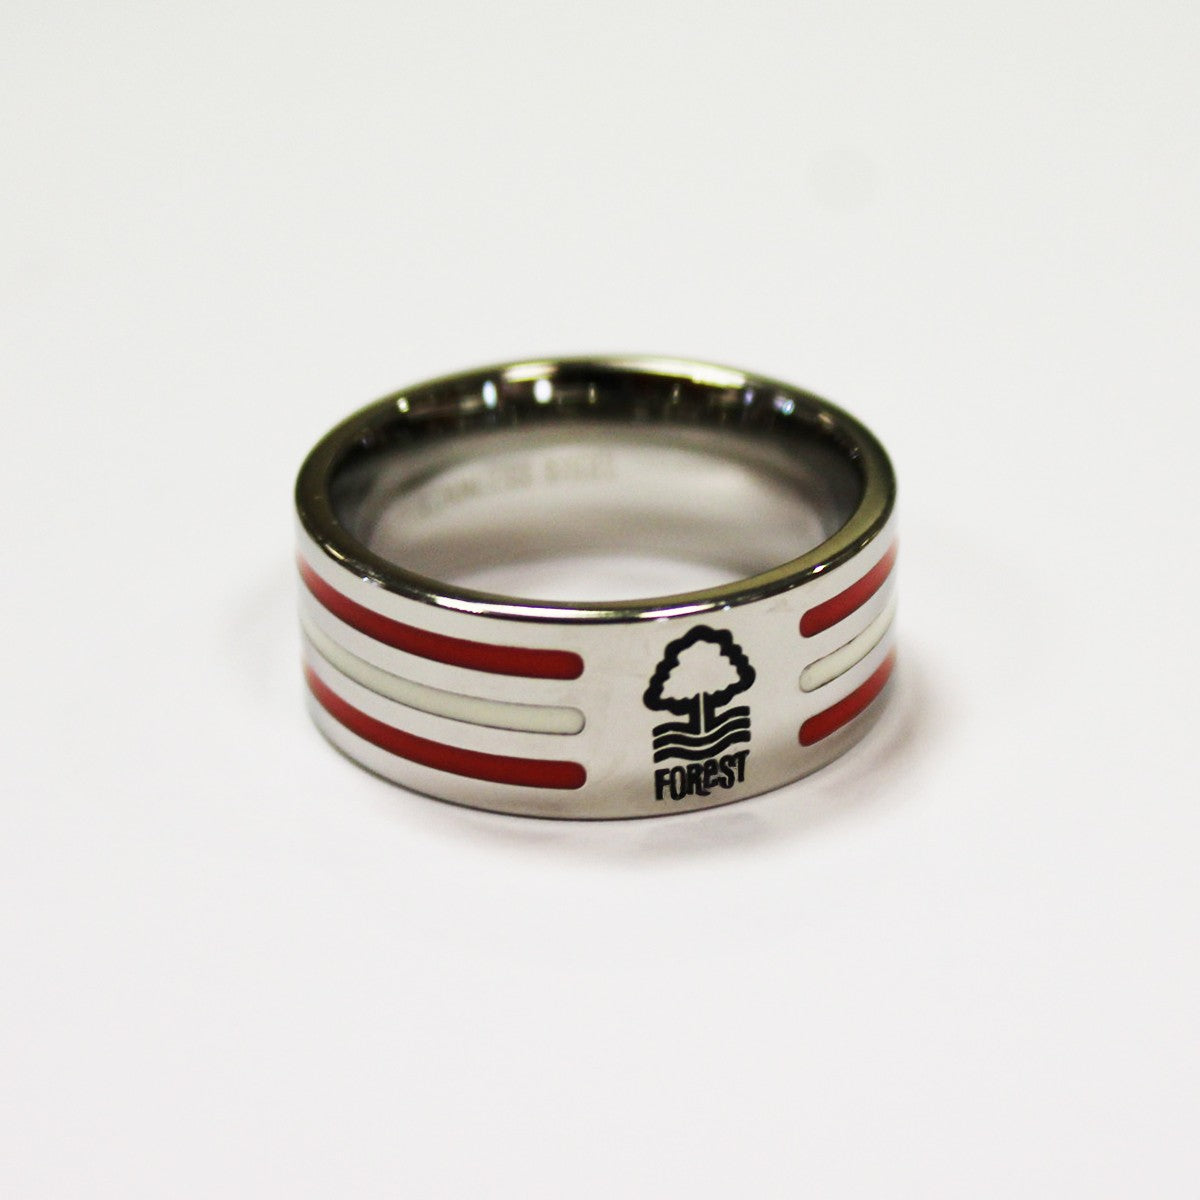 NFFC Colour Stripe Crest Ring